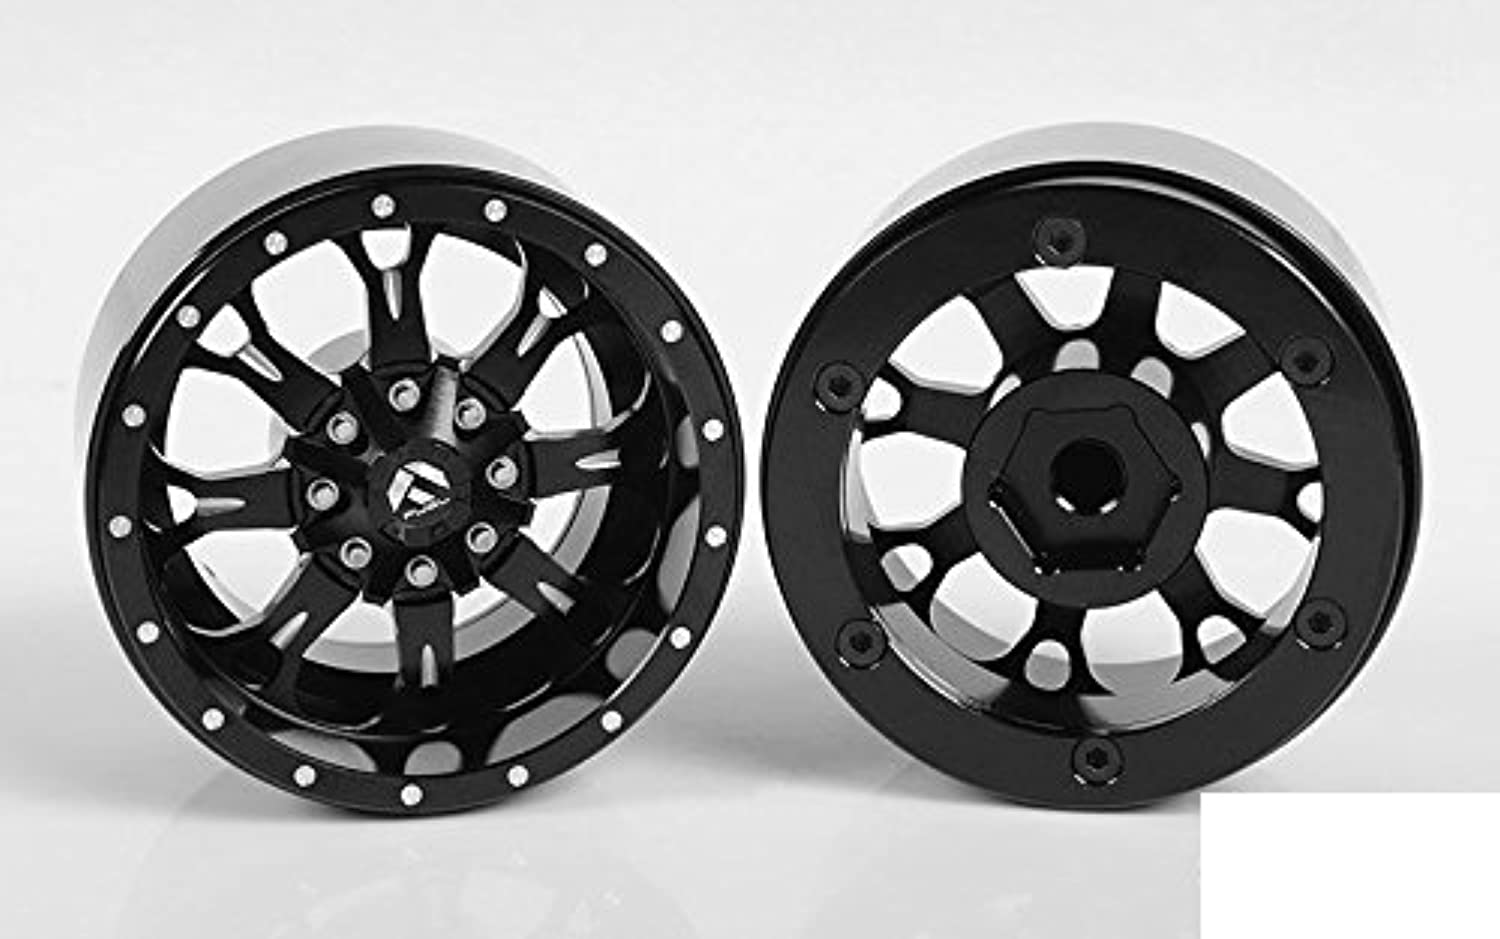 RC4WD Fuel Offroad Krank 1.7  Beadlock Wheels Z-W0256 Black Off-Road Neg offset